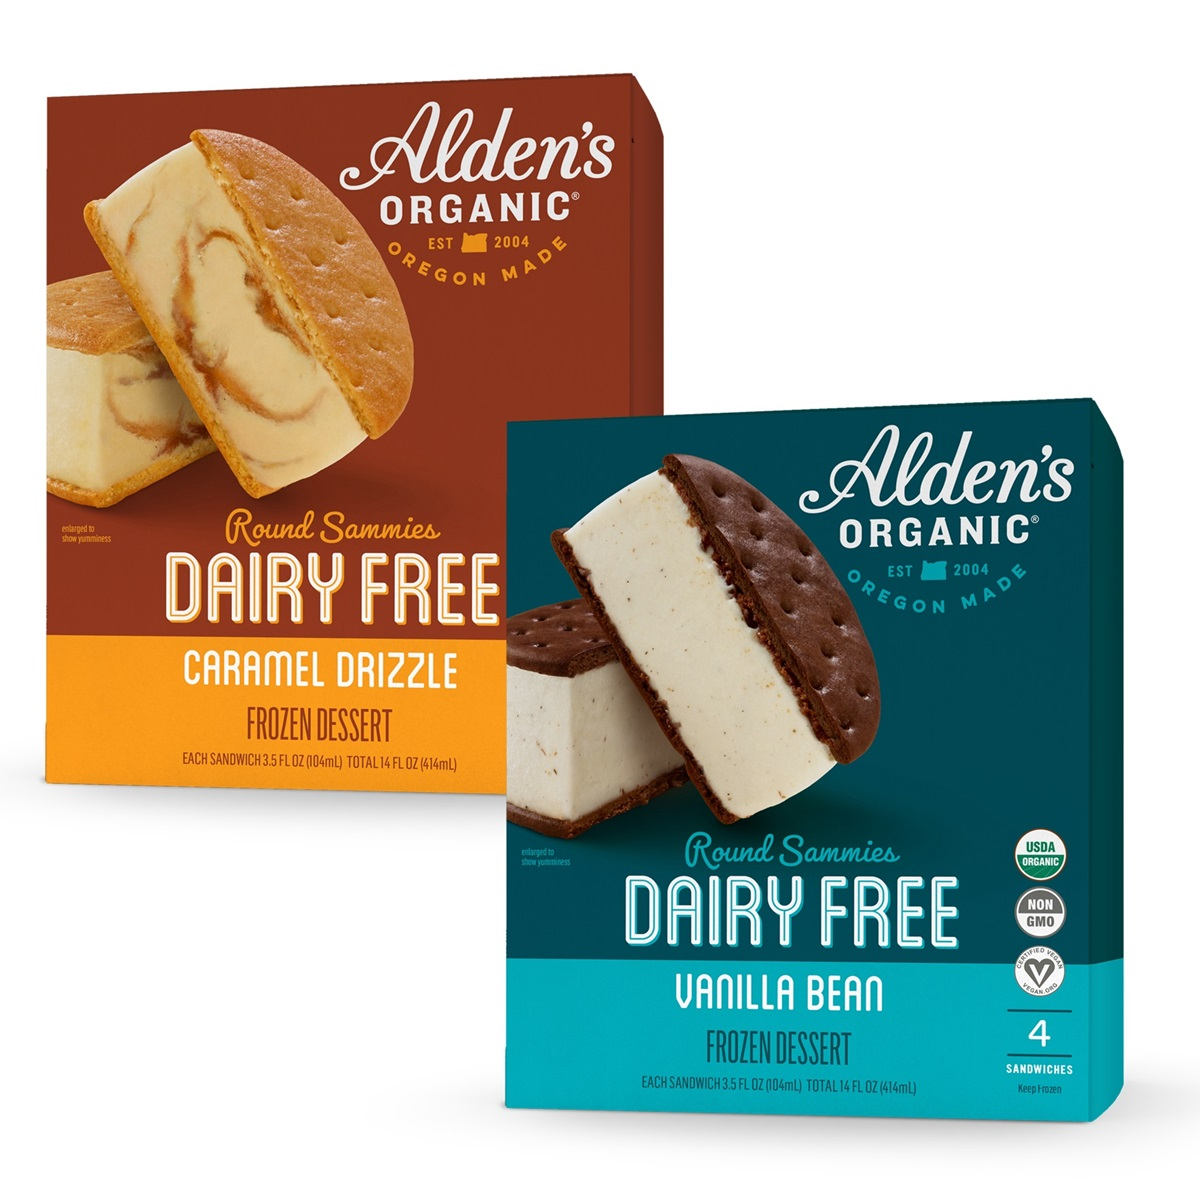 Alden's Organic Dairy-Free Sammies Reviews and Information - Cool Vegan Ice Cream Sandwiches